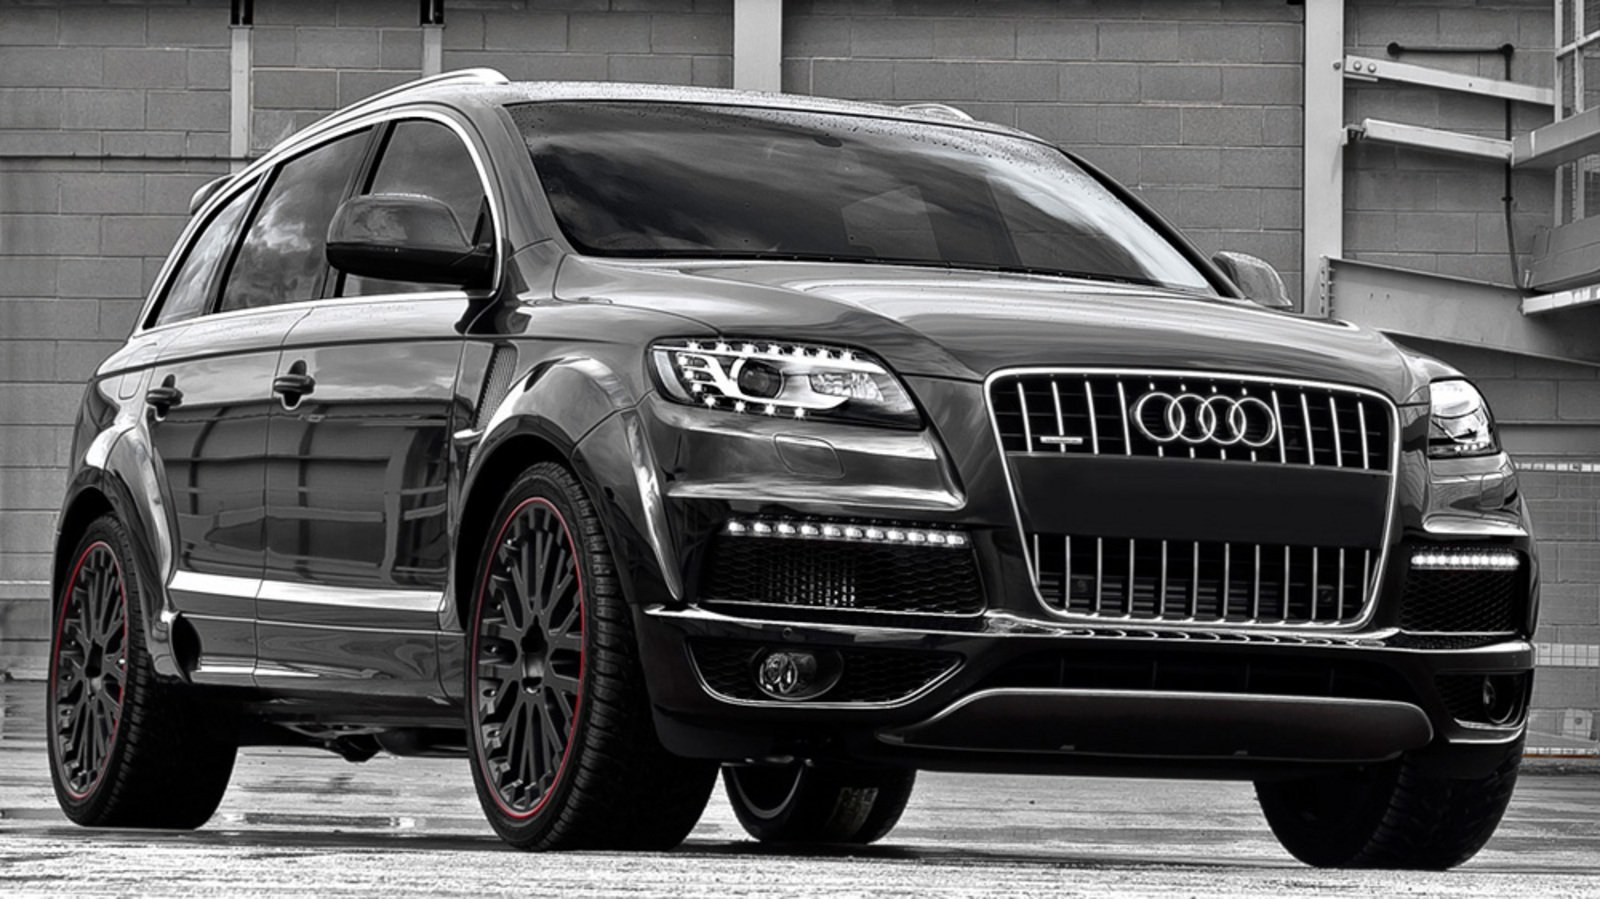 Audi Q >> Audi Q7 Reviews Specs Prices Photos And Videos Top Speed